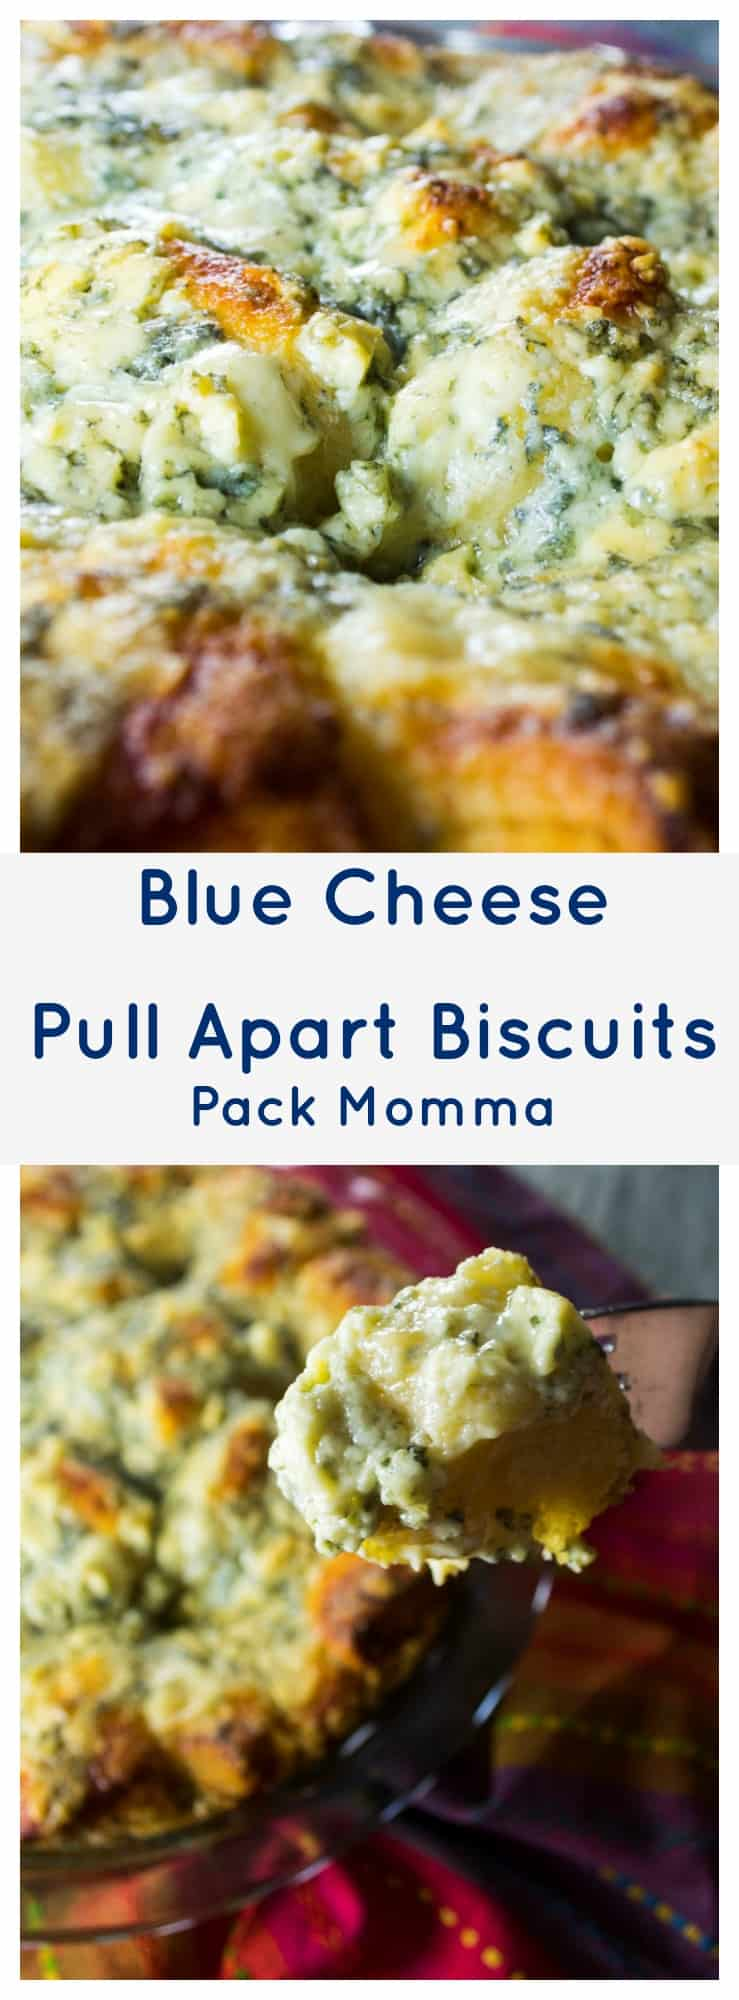 Blue Cheese Appetizer Biscuits | Blue Cheese Appetizer Biscuits is a hot, cheesy, bubbly appetizer that only has THREE INGREDIENTS! It's the perfect snack for your next social gathering. | Pack Momma | https://packmomma.com